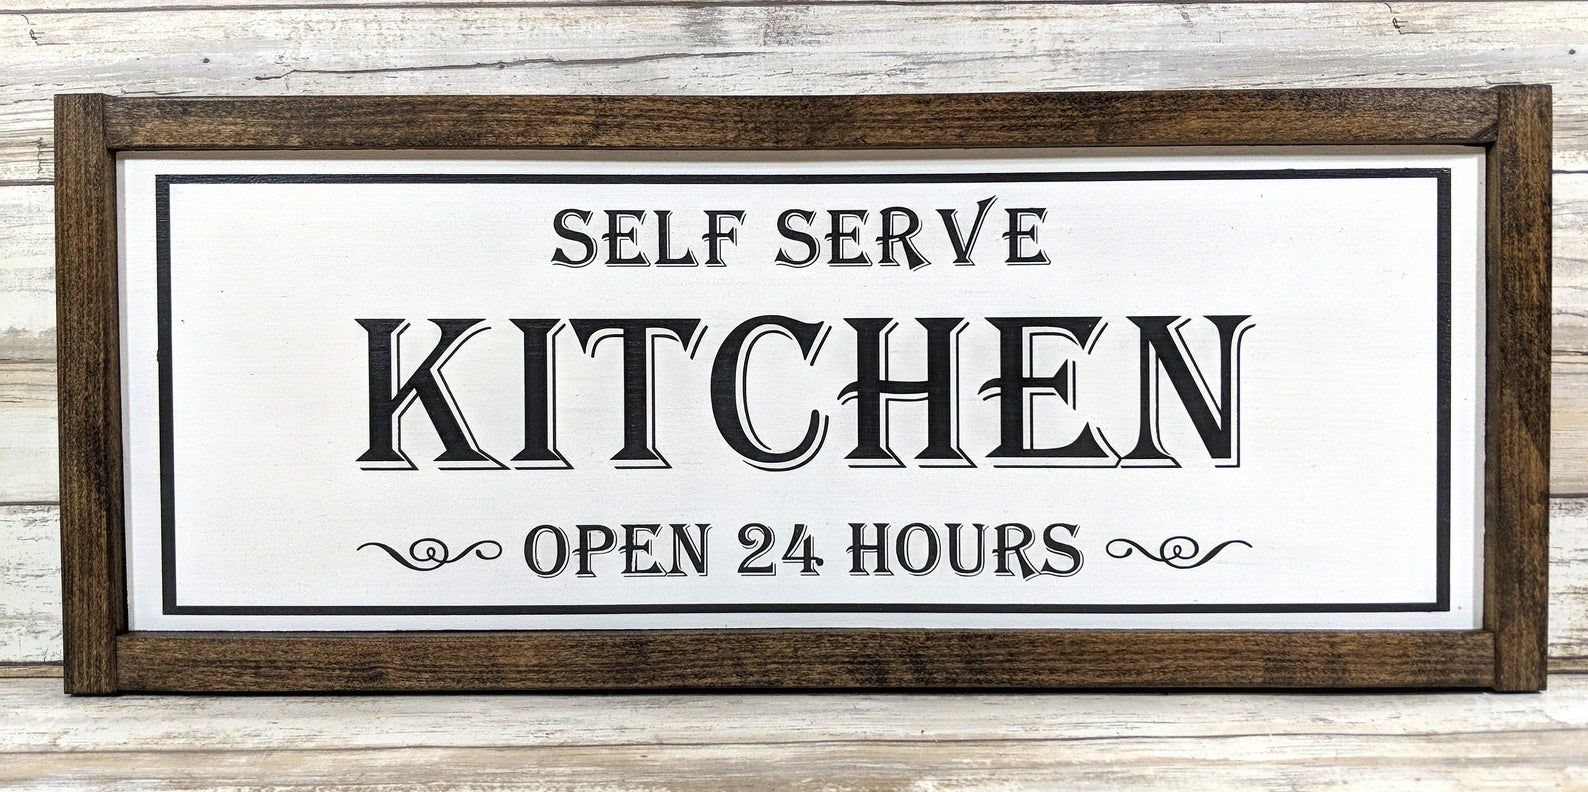 self serve kitchen open 24 hours rustic wood | etsy in